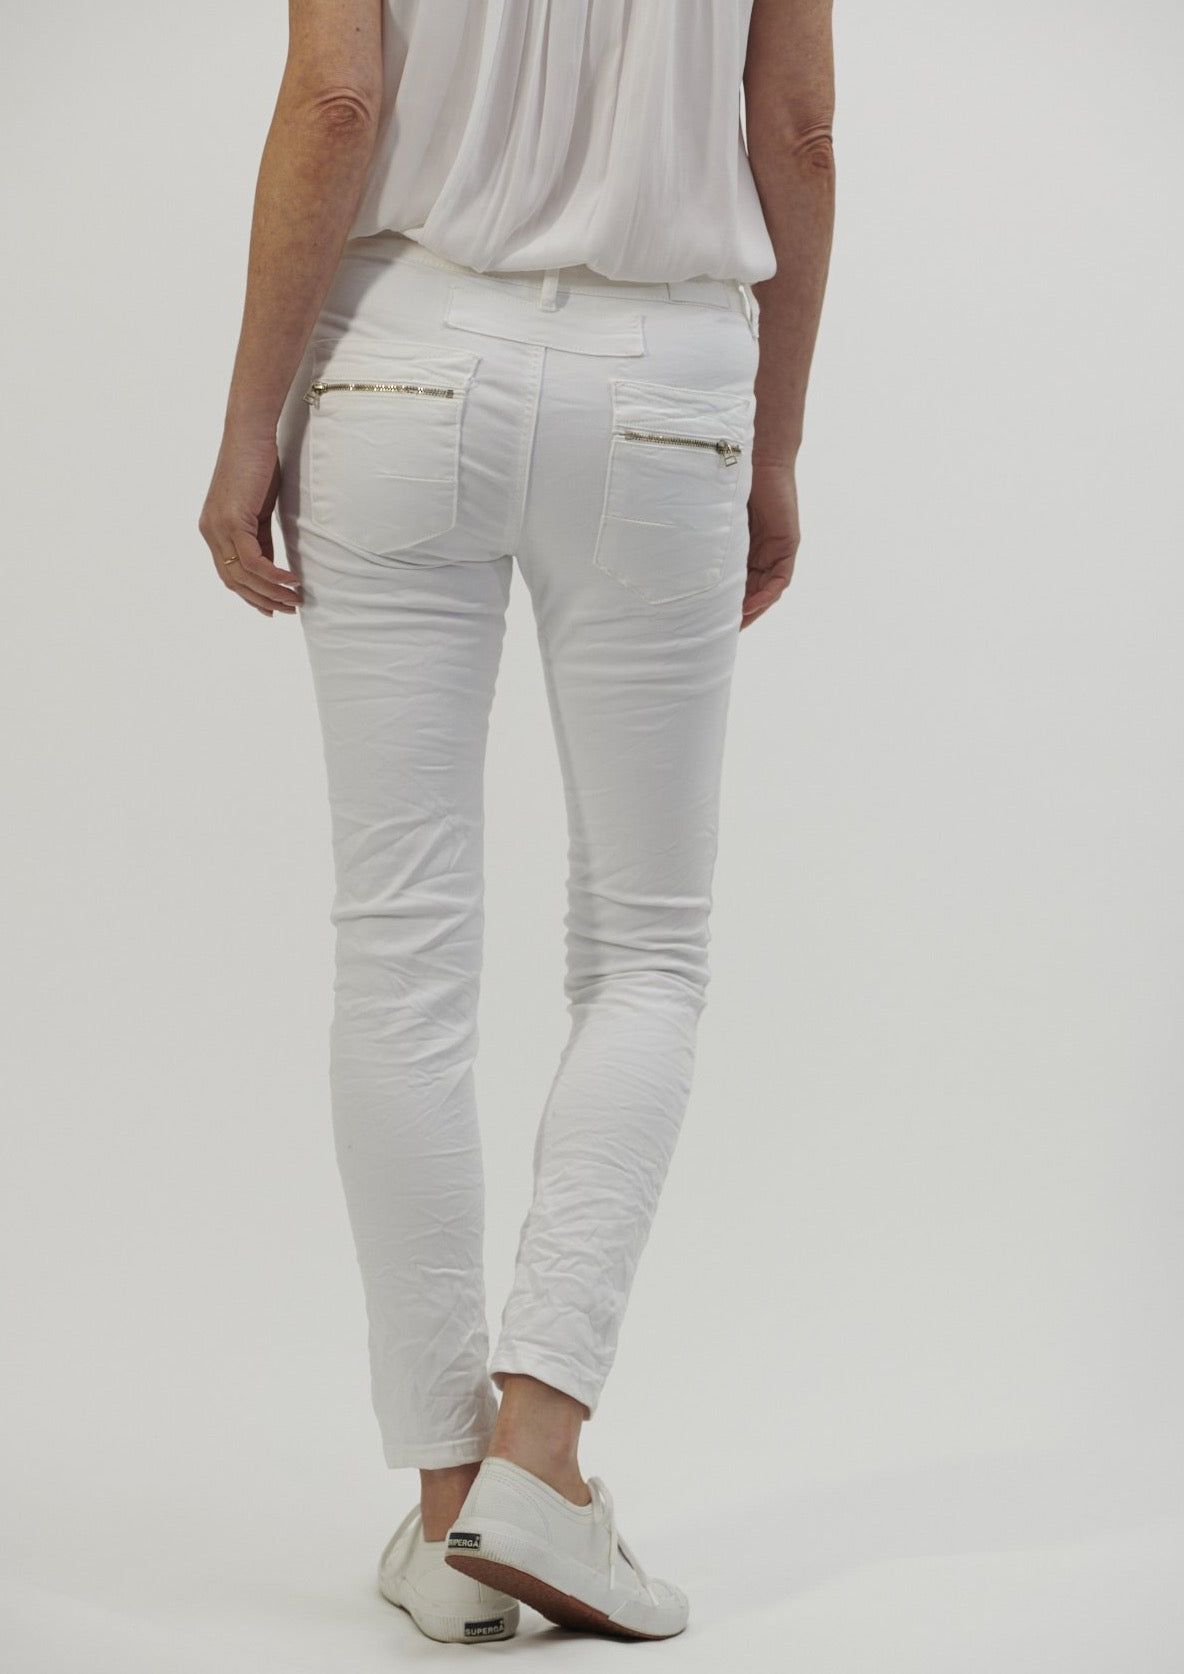 Italian Star Button Jeans - White